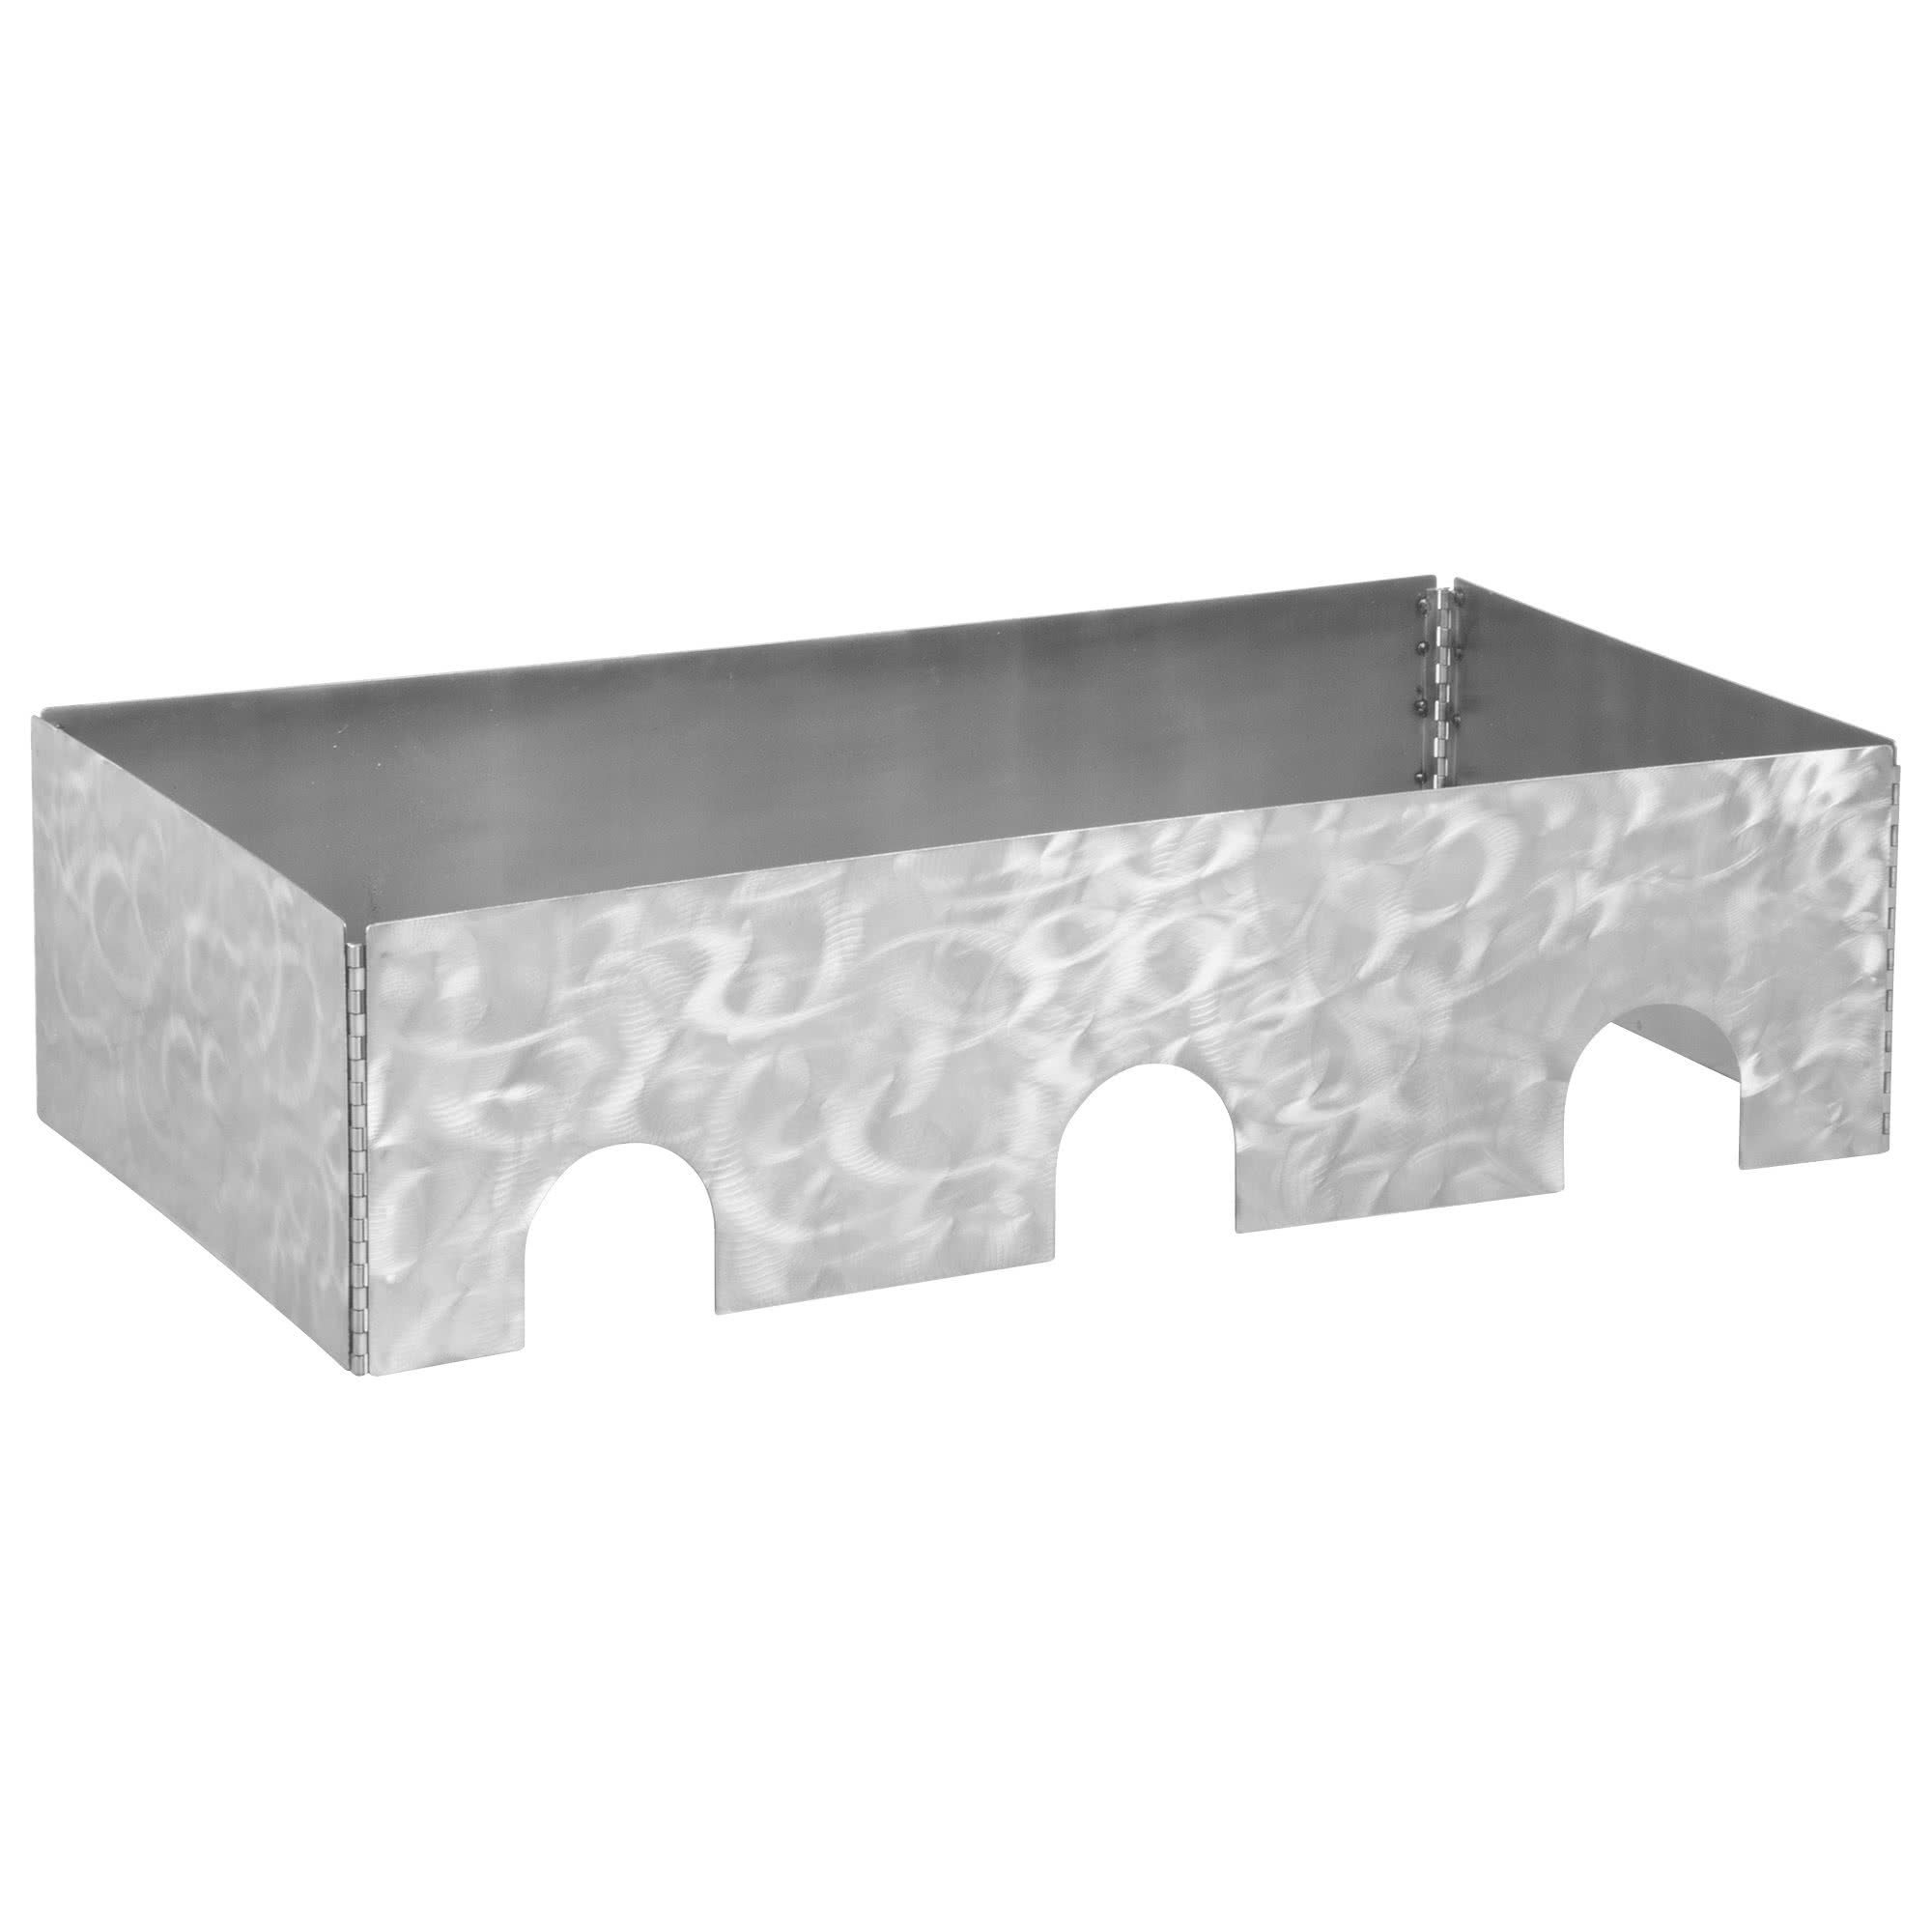 TableTop king Caterware CW603RSS 3-Well Collapsible 16 Gauge Random Swirl Stainless Steel Server